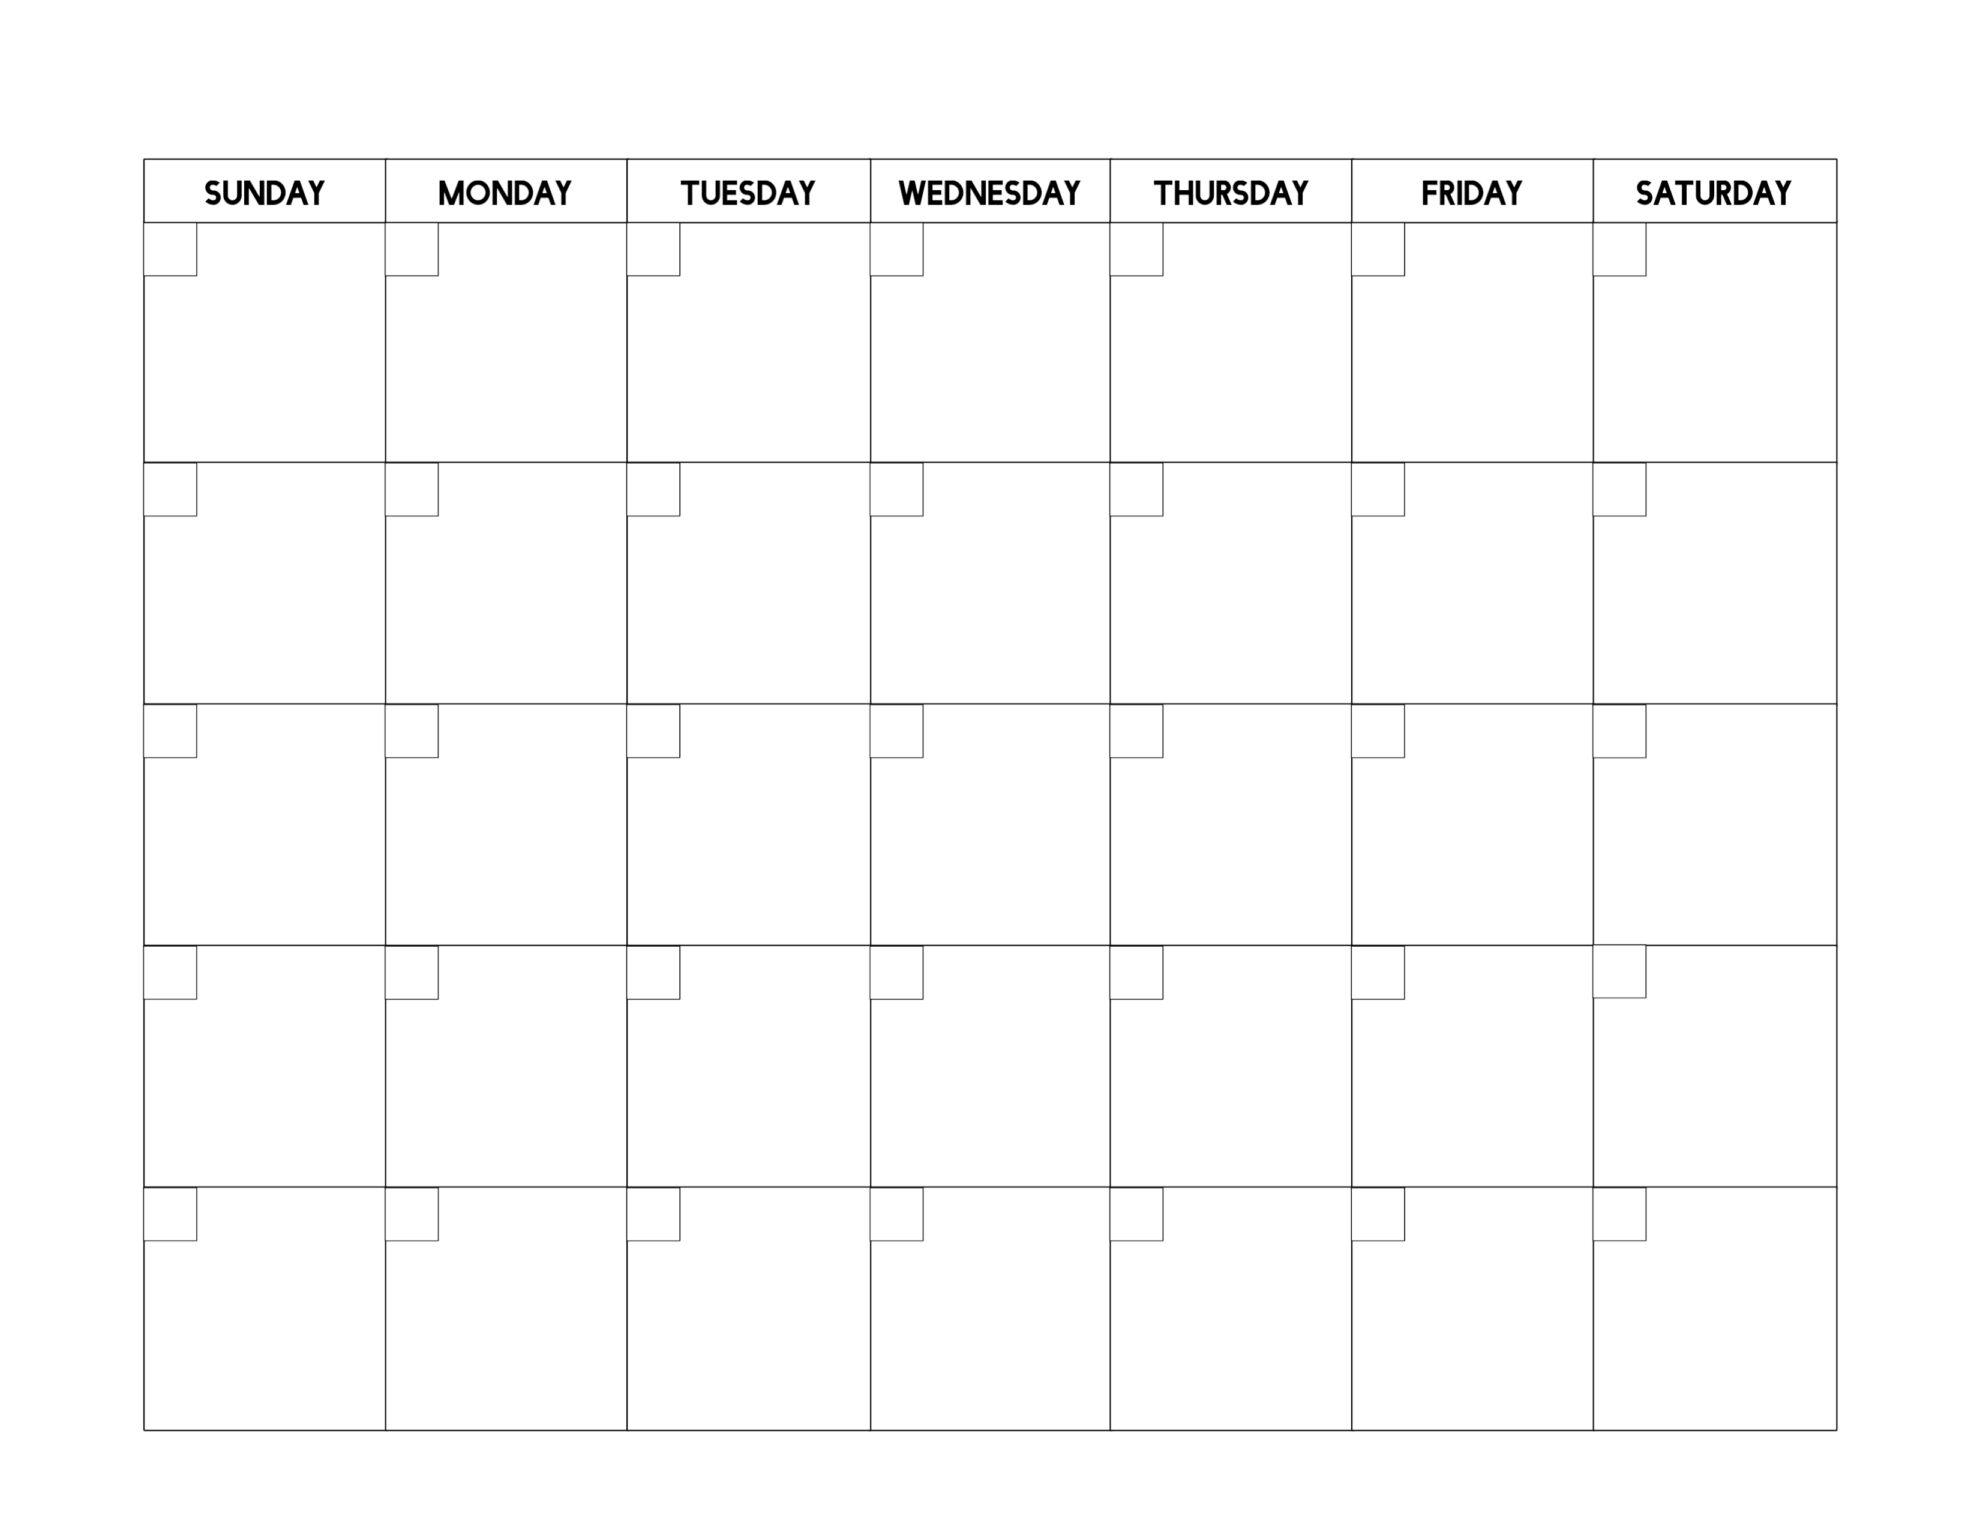 Free Printable Blank Calendar Template   Paper Trail Design Calendar Template In Pages